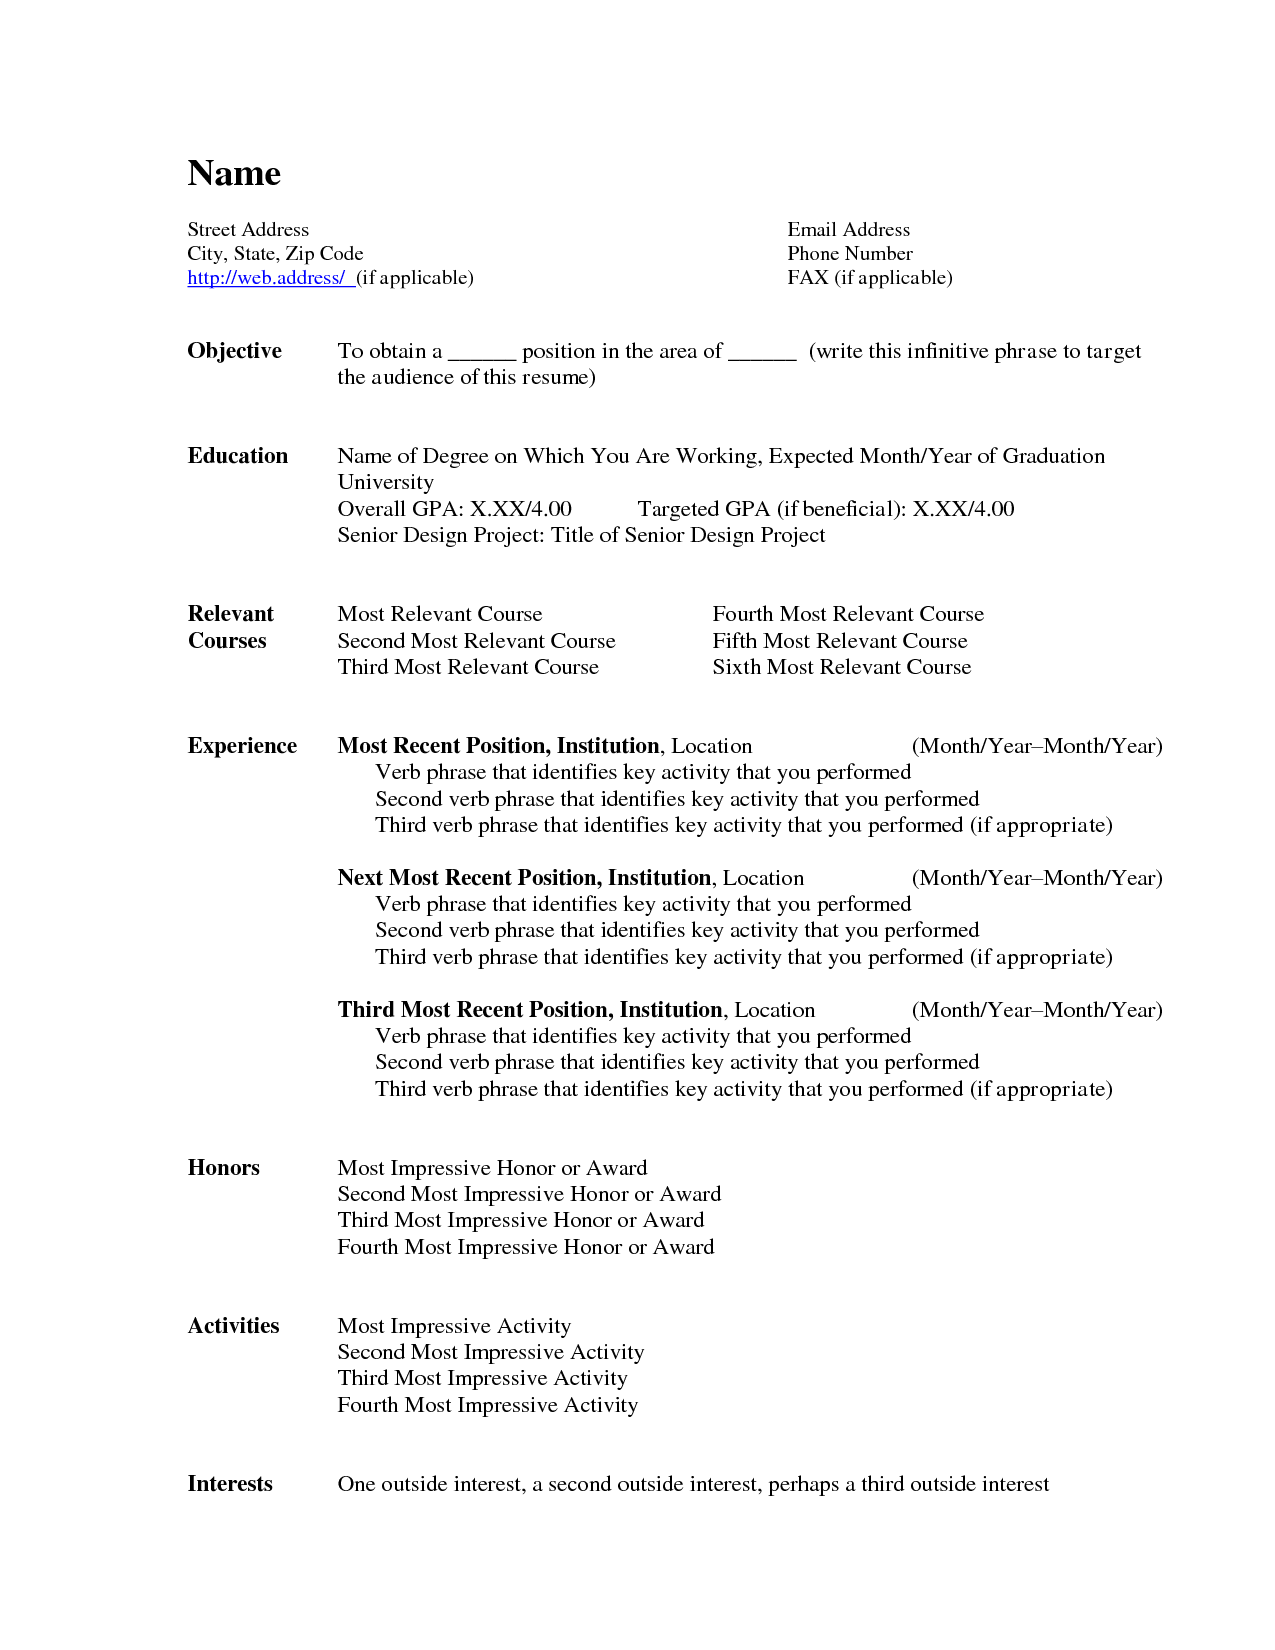 microsoft word resume template resume builder resume resume httpwwwjobresume. Resume Example. Resume CV Cover Letter